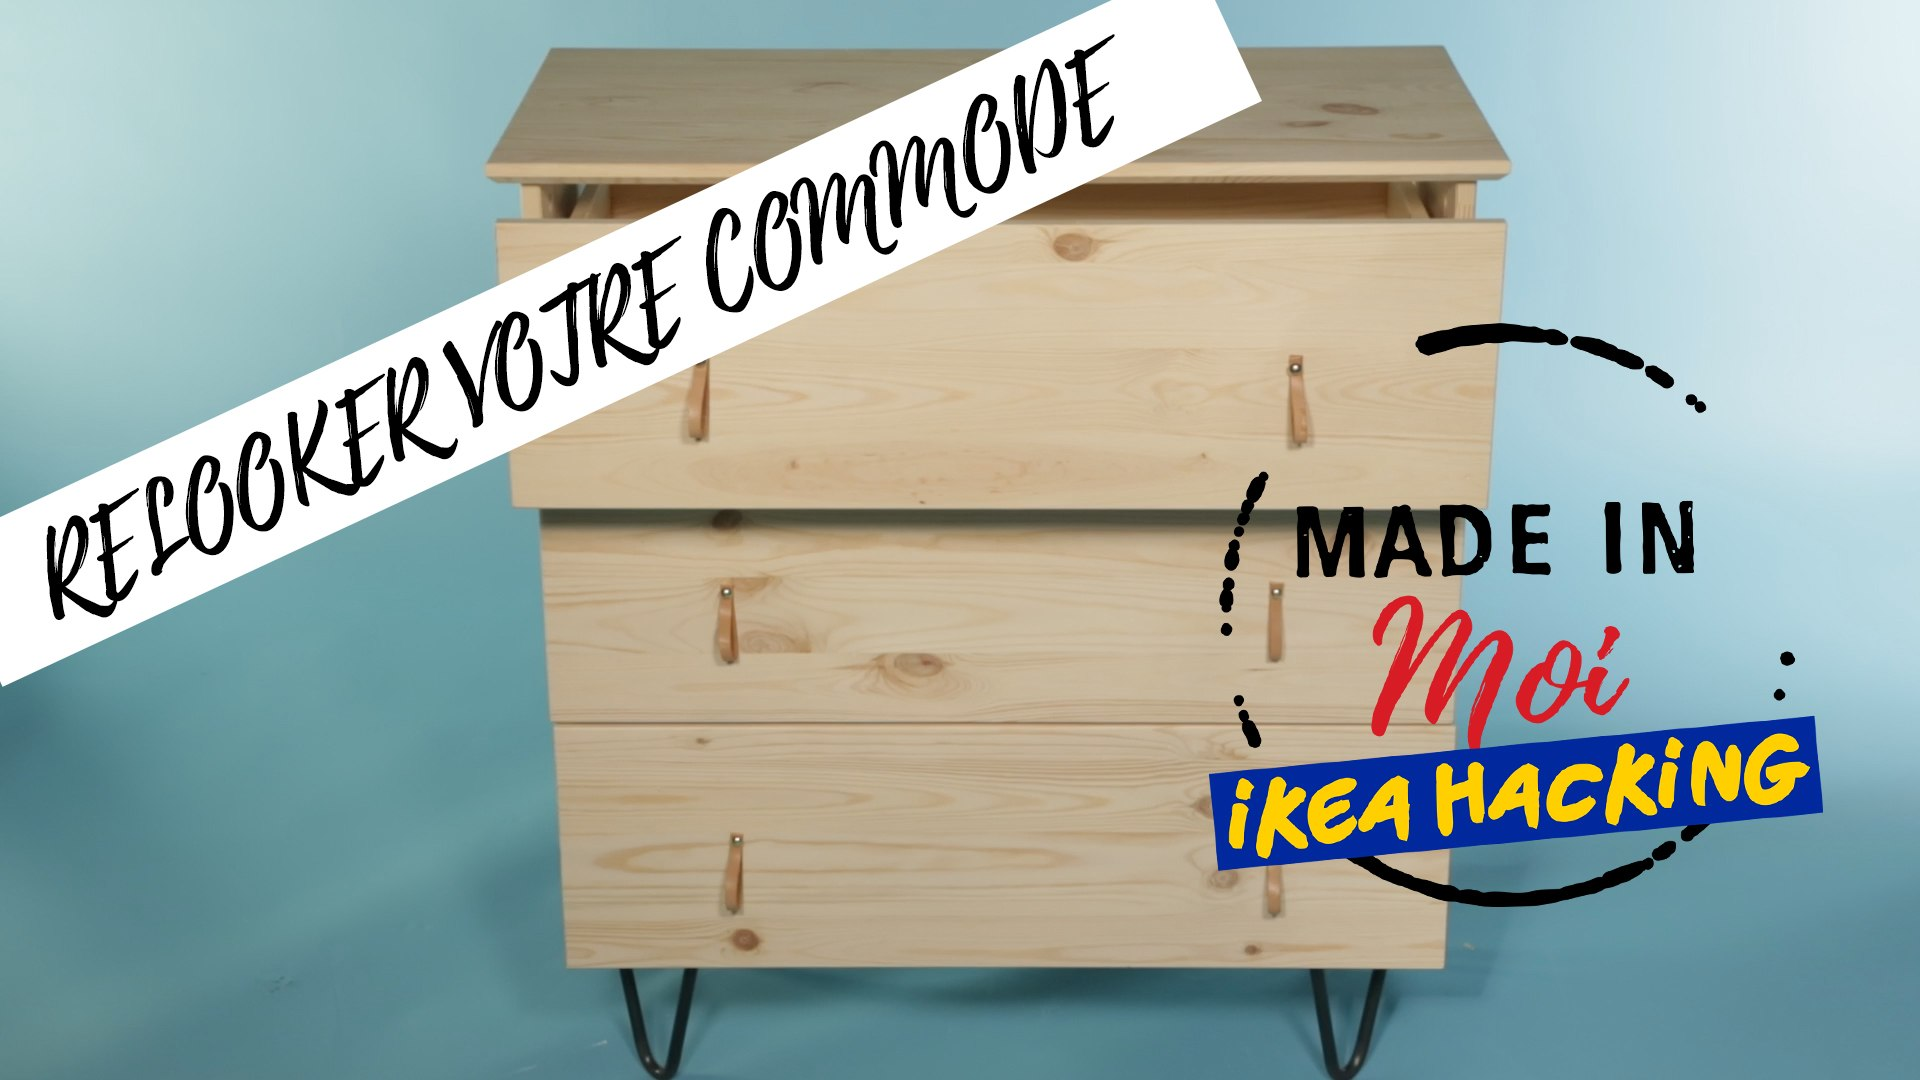 Comment Customiser Une Armoire made in moi : comment relooker votre commode ikea ?